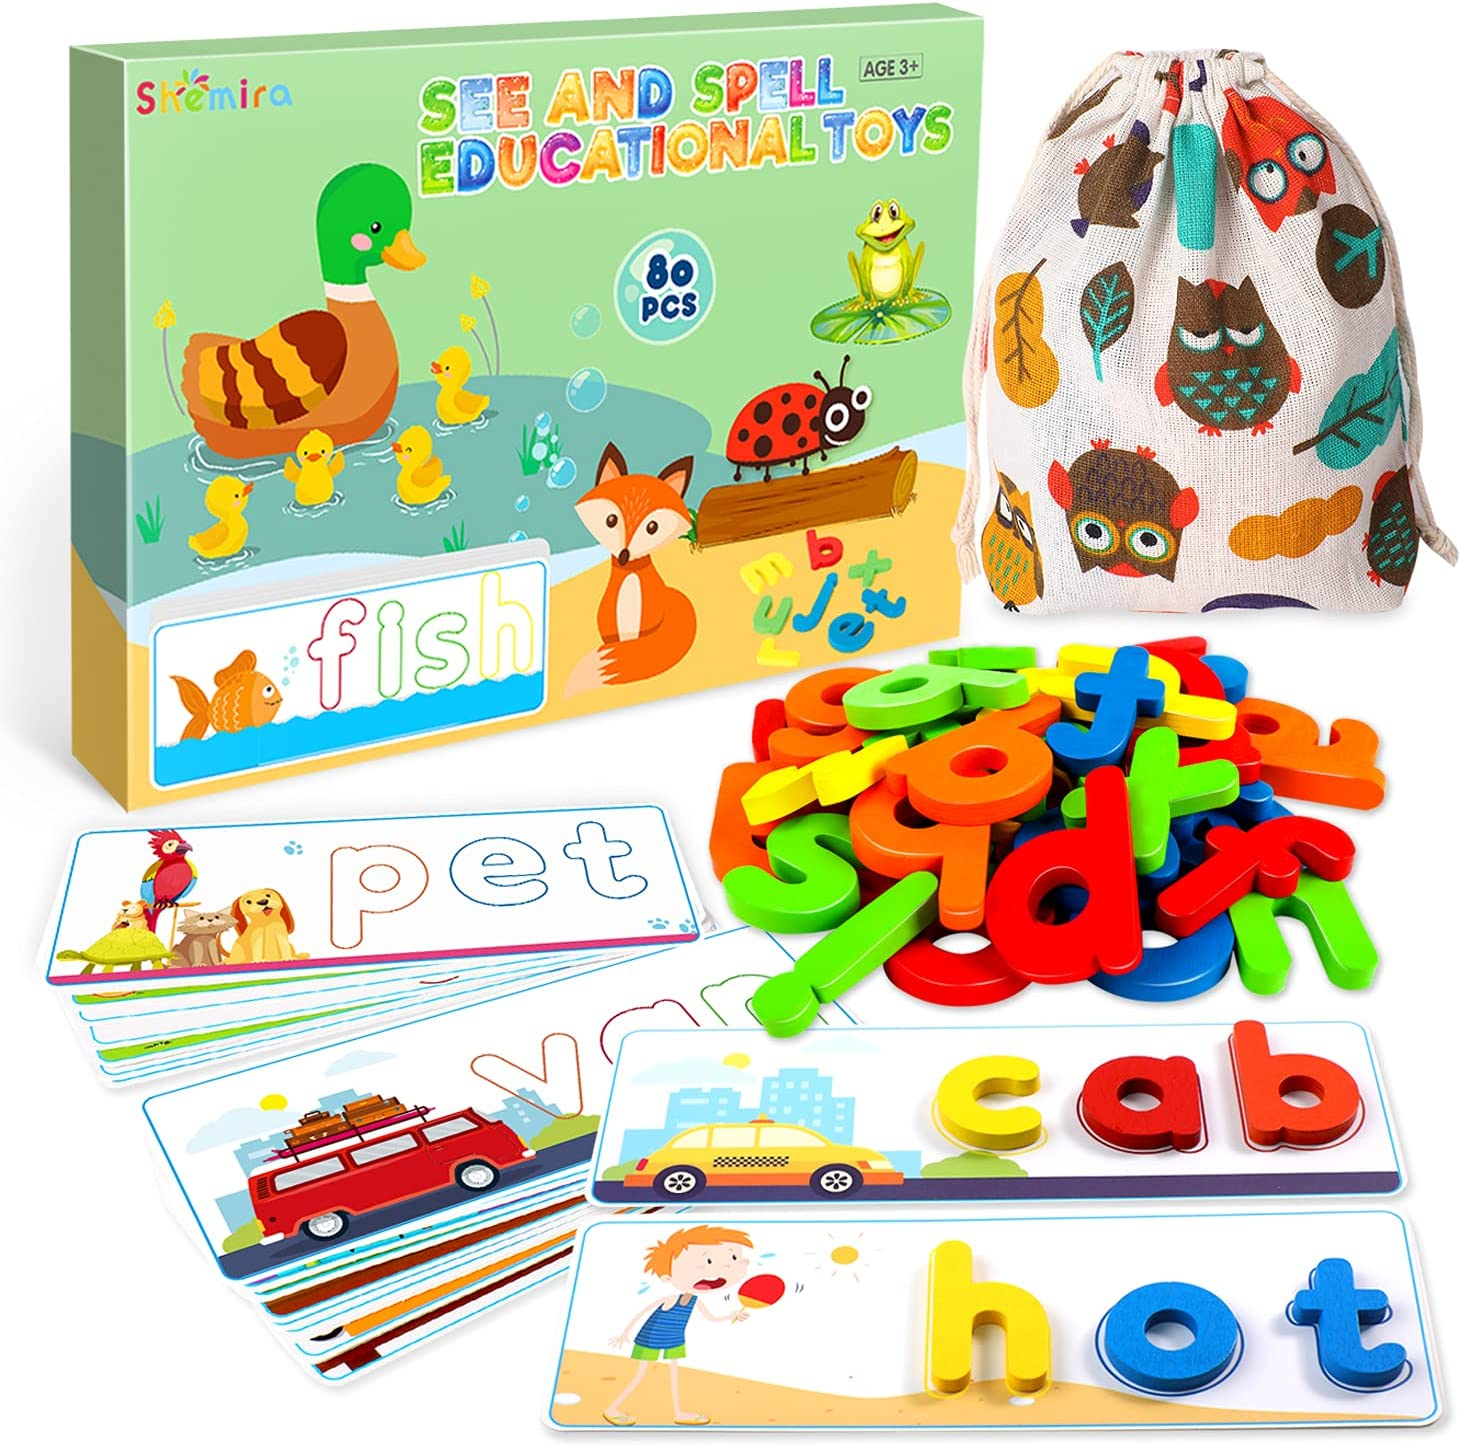 See & Spell Matching Letter Game Toy for Kids,Learning Educational Toy for 3 4 5 6 Years Old Boys and Girls,Preschool/Kindergarten Learning Activities,Shape & Color Recognition Game,CVC Word Builders